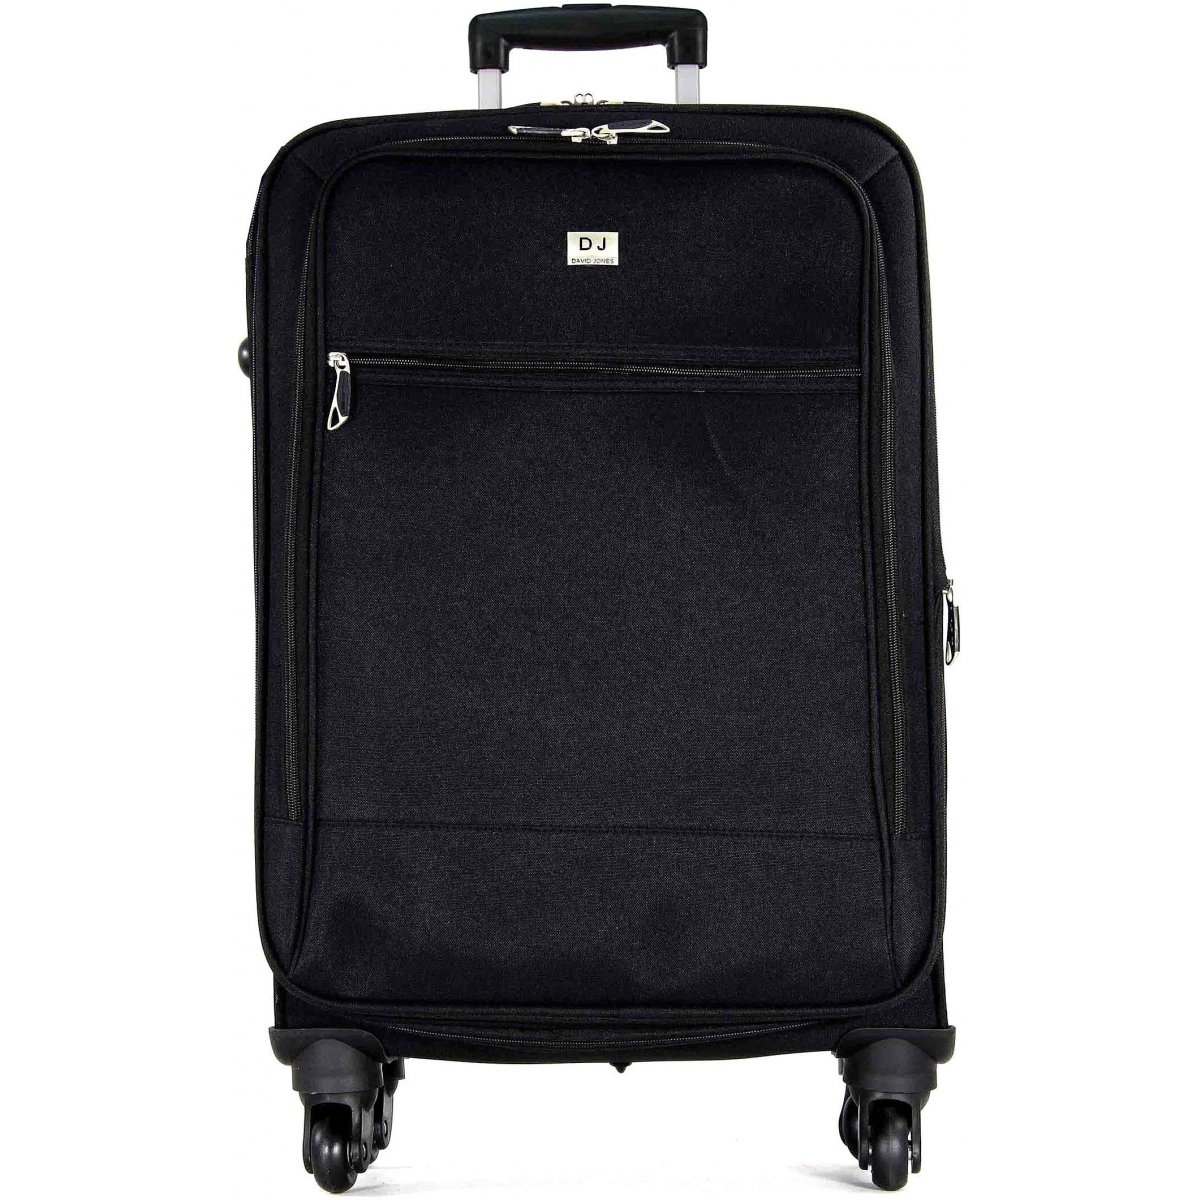 valise souple david jones taille m 66cm r20031m couleur principale noir promotion. Black Bedroom Furniture Sets. Home Design Ideas